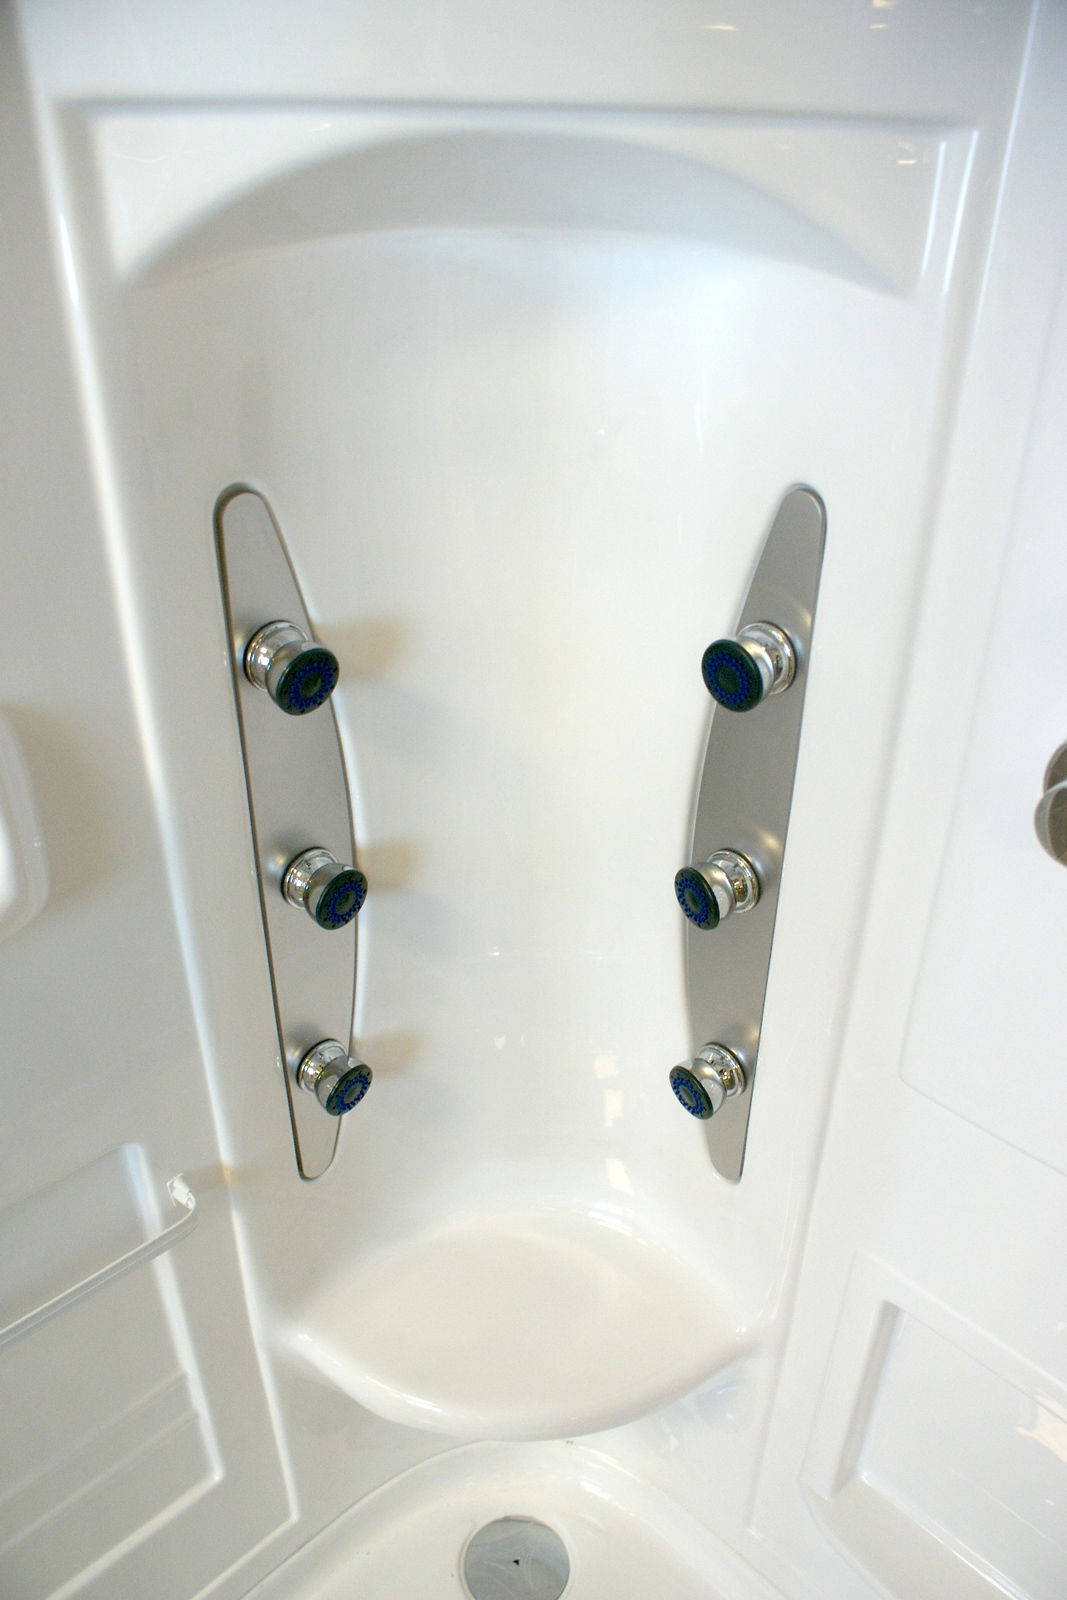 Crystal luxury hydromassage non steam shower cabin cubicle enclosure white 221363240667 4 tewp - Luxury shower cubicles ...